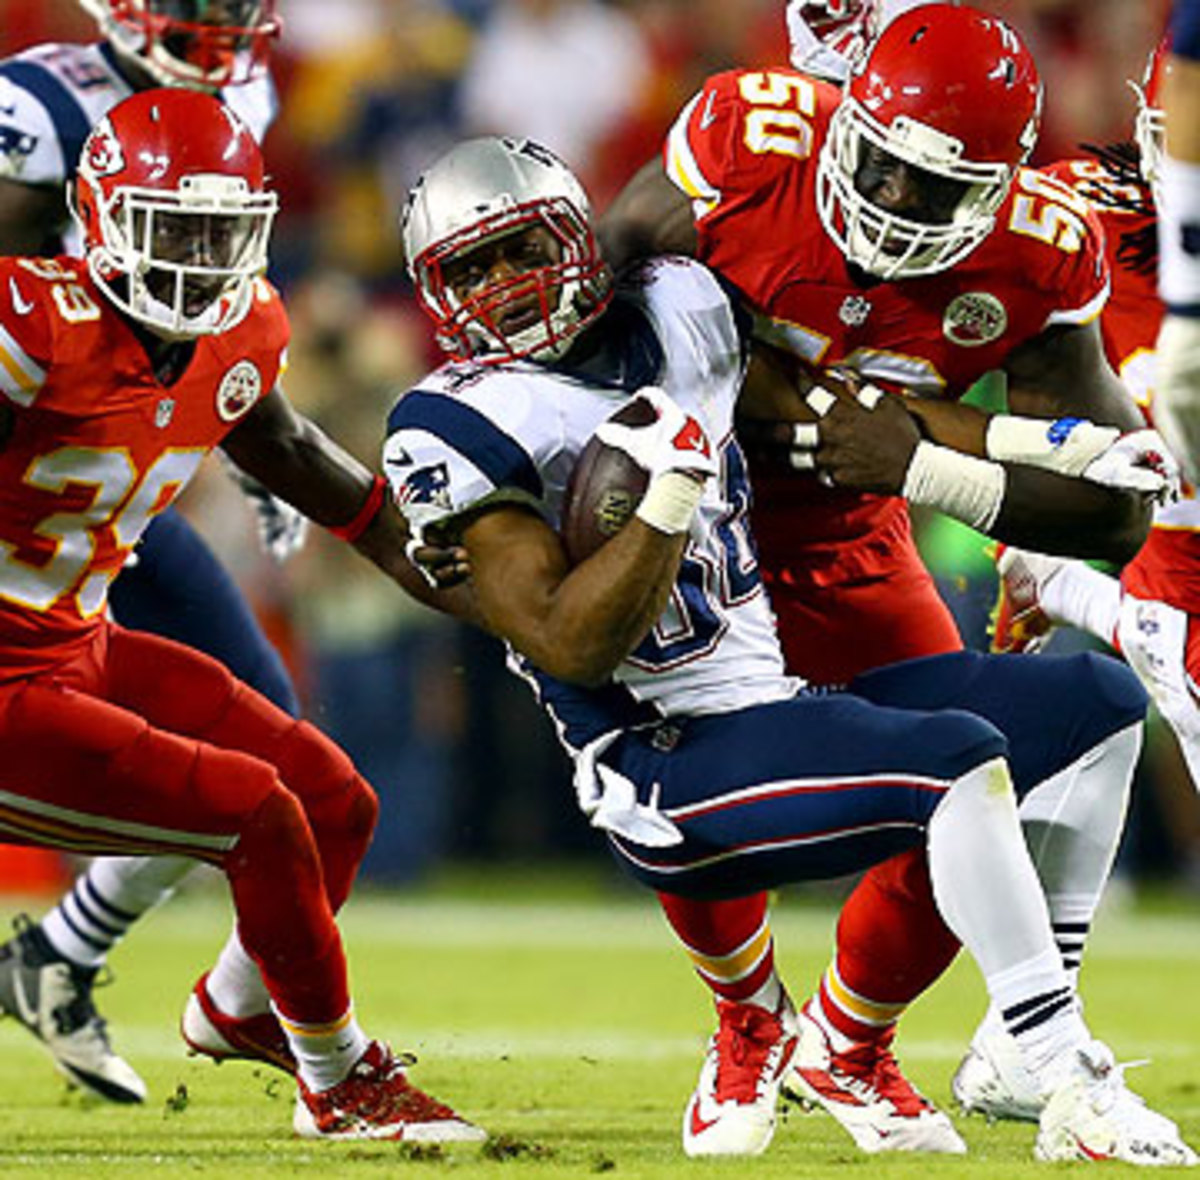 New England's skill position players, like Shane Vereen, haven't found much space to operate this season. (Dilip Vishwanat/Getty Images)